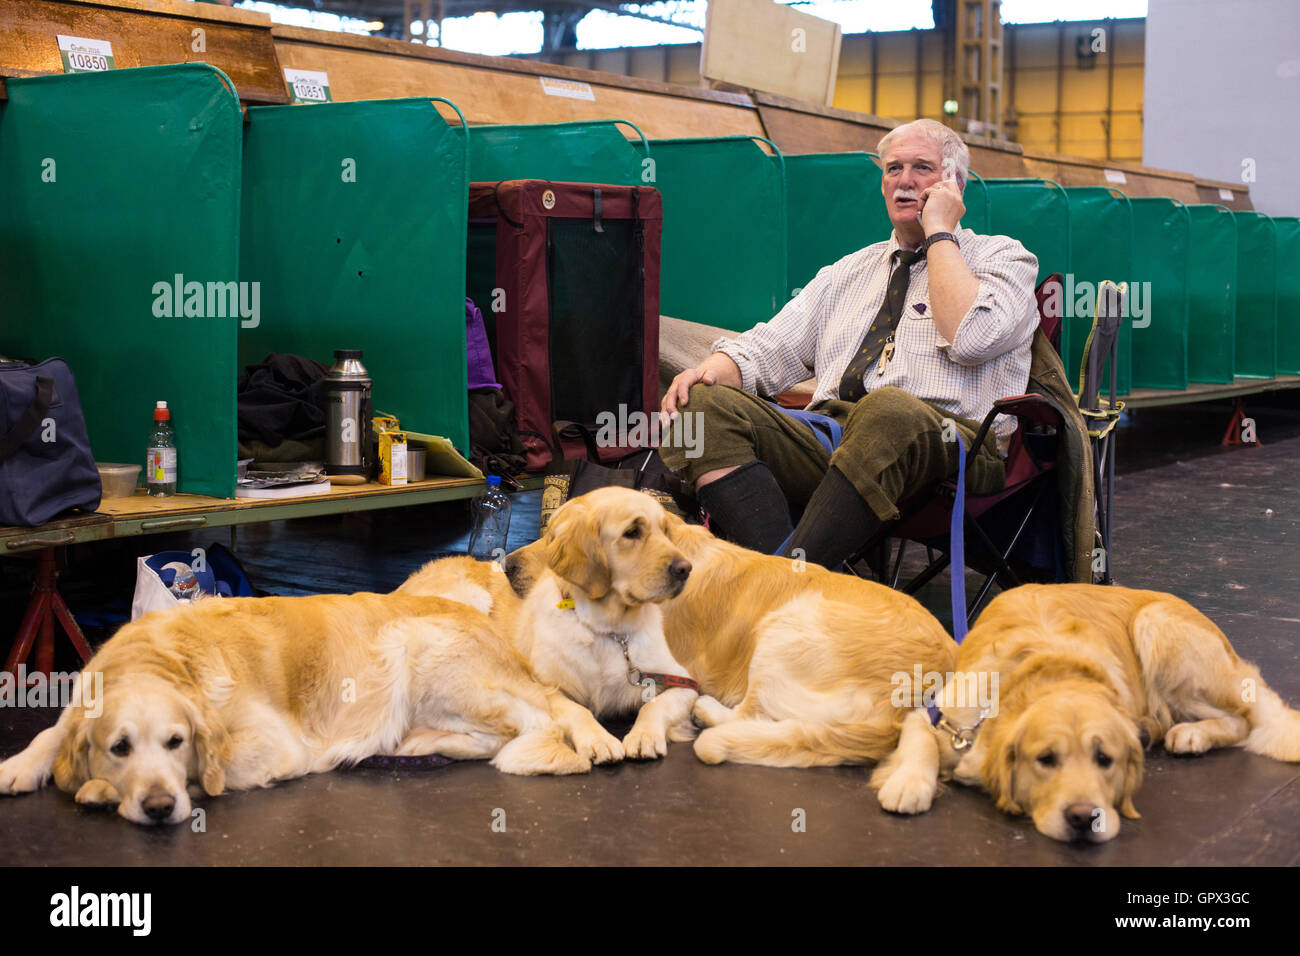 A dog breeder sits surrounded by his Labradors at Crufts